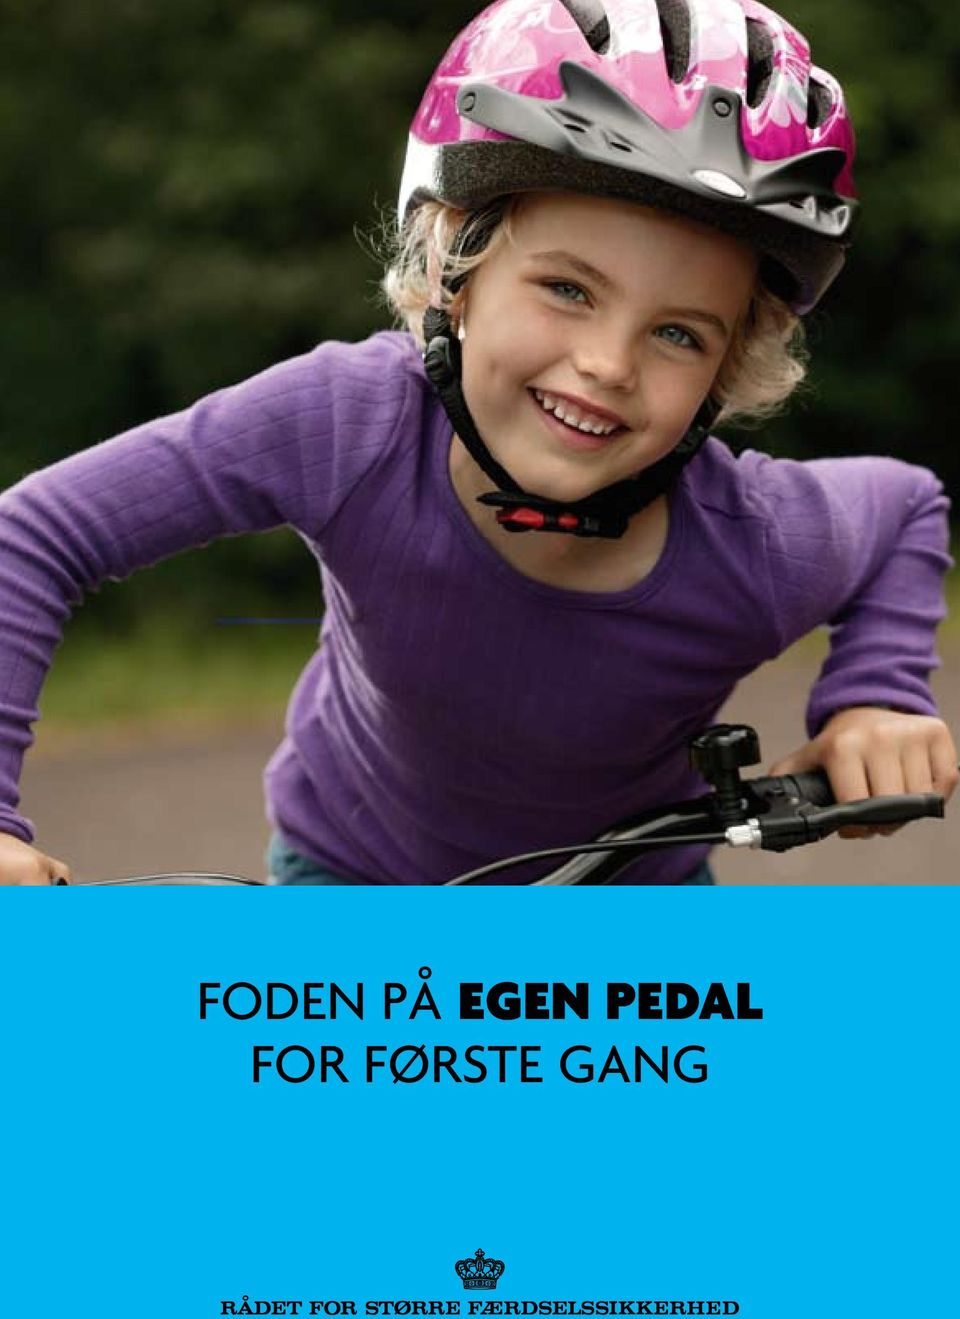 pedal for